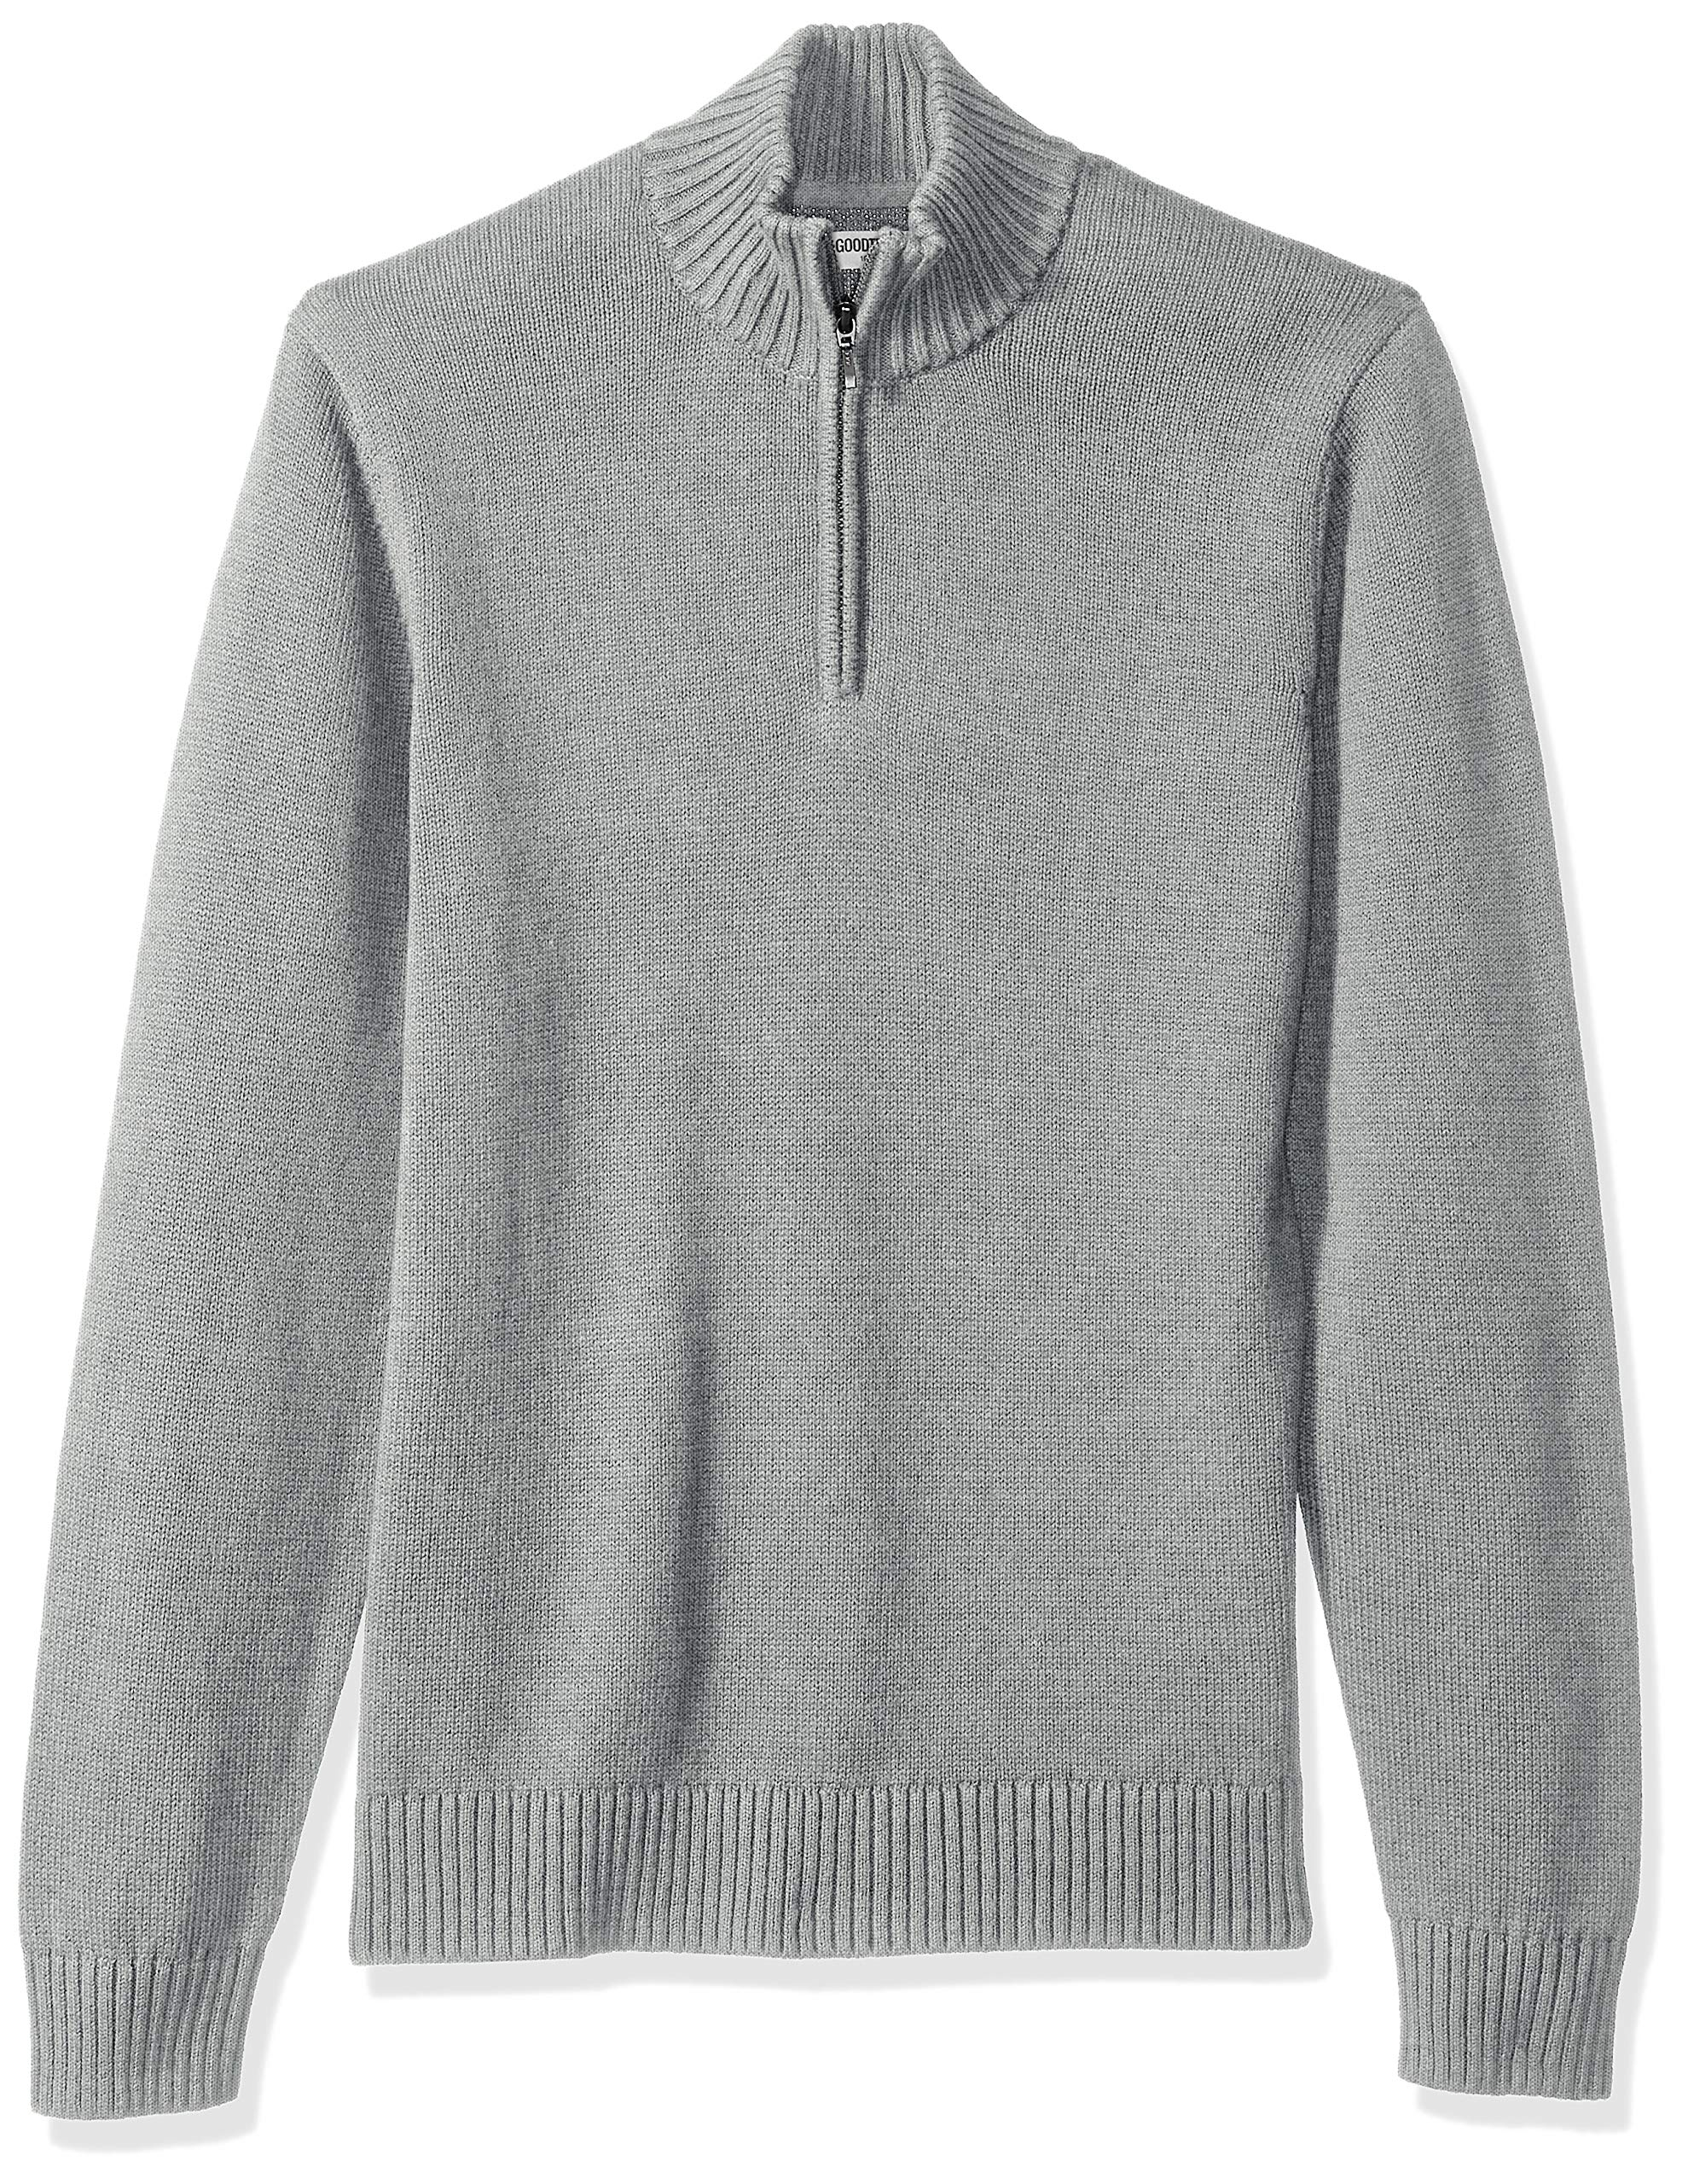 bdd7677f9 Best Rated in Men s Pullover Sweaters   Helpful Customer Reviews ...